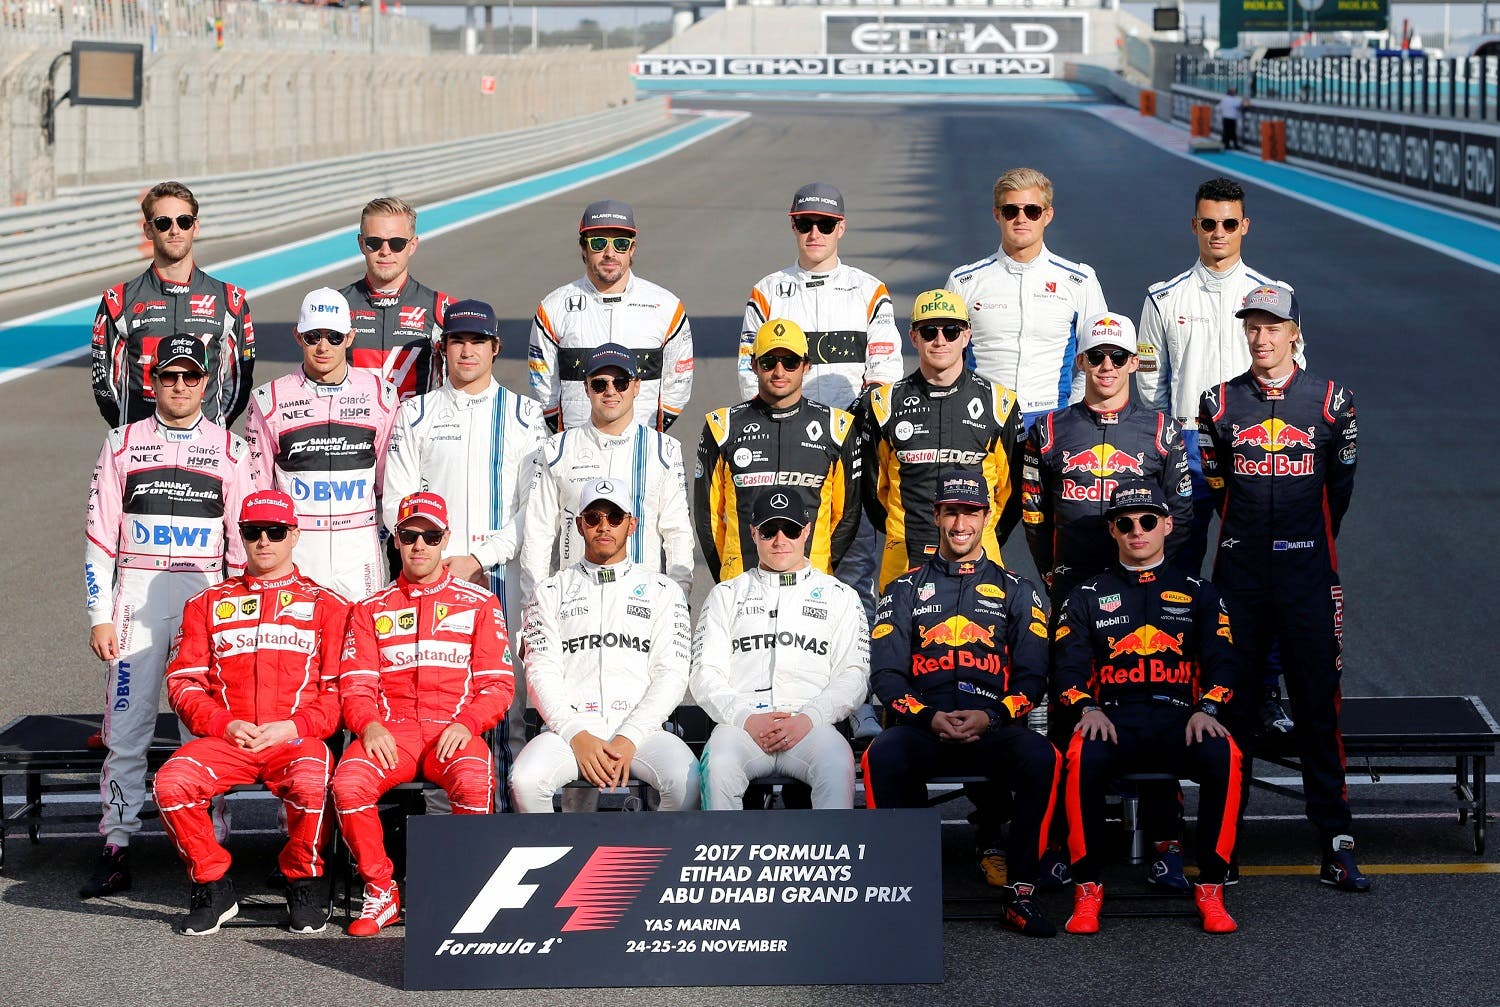 Formula One 2017 season drivers pose for end of season group photo during Abu Dhabi Grand Prix at Yas Marina Circuit on November 26, 2017. (Reuters)